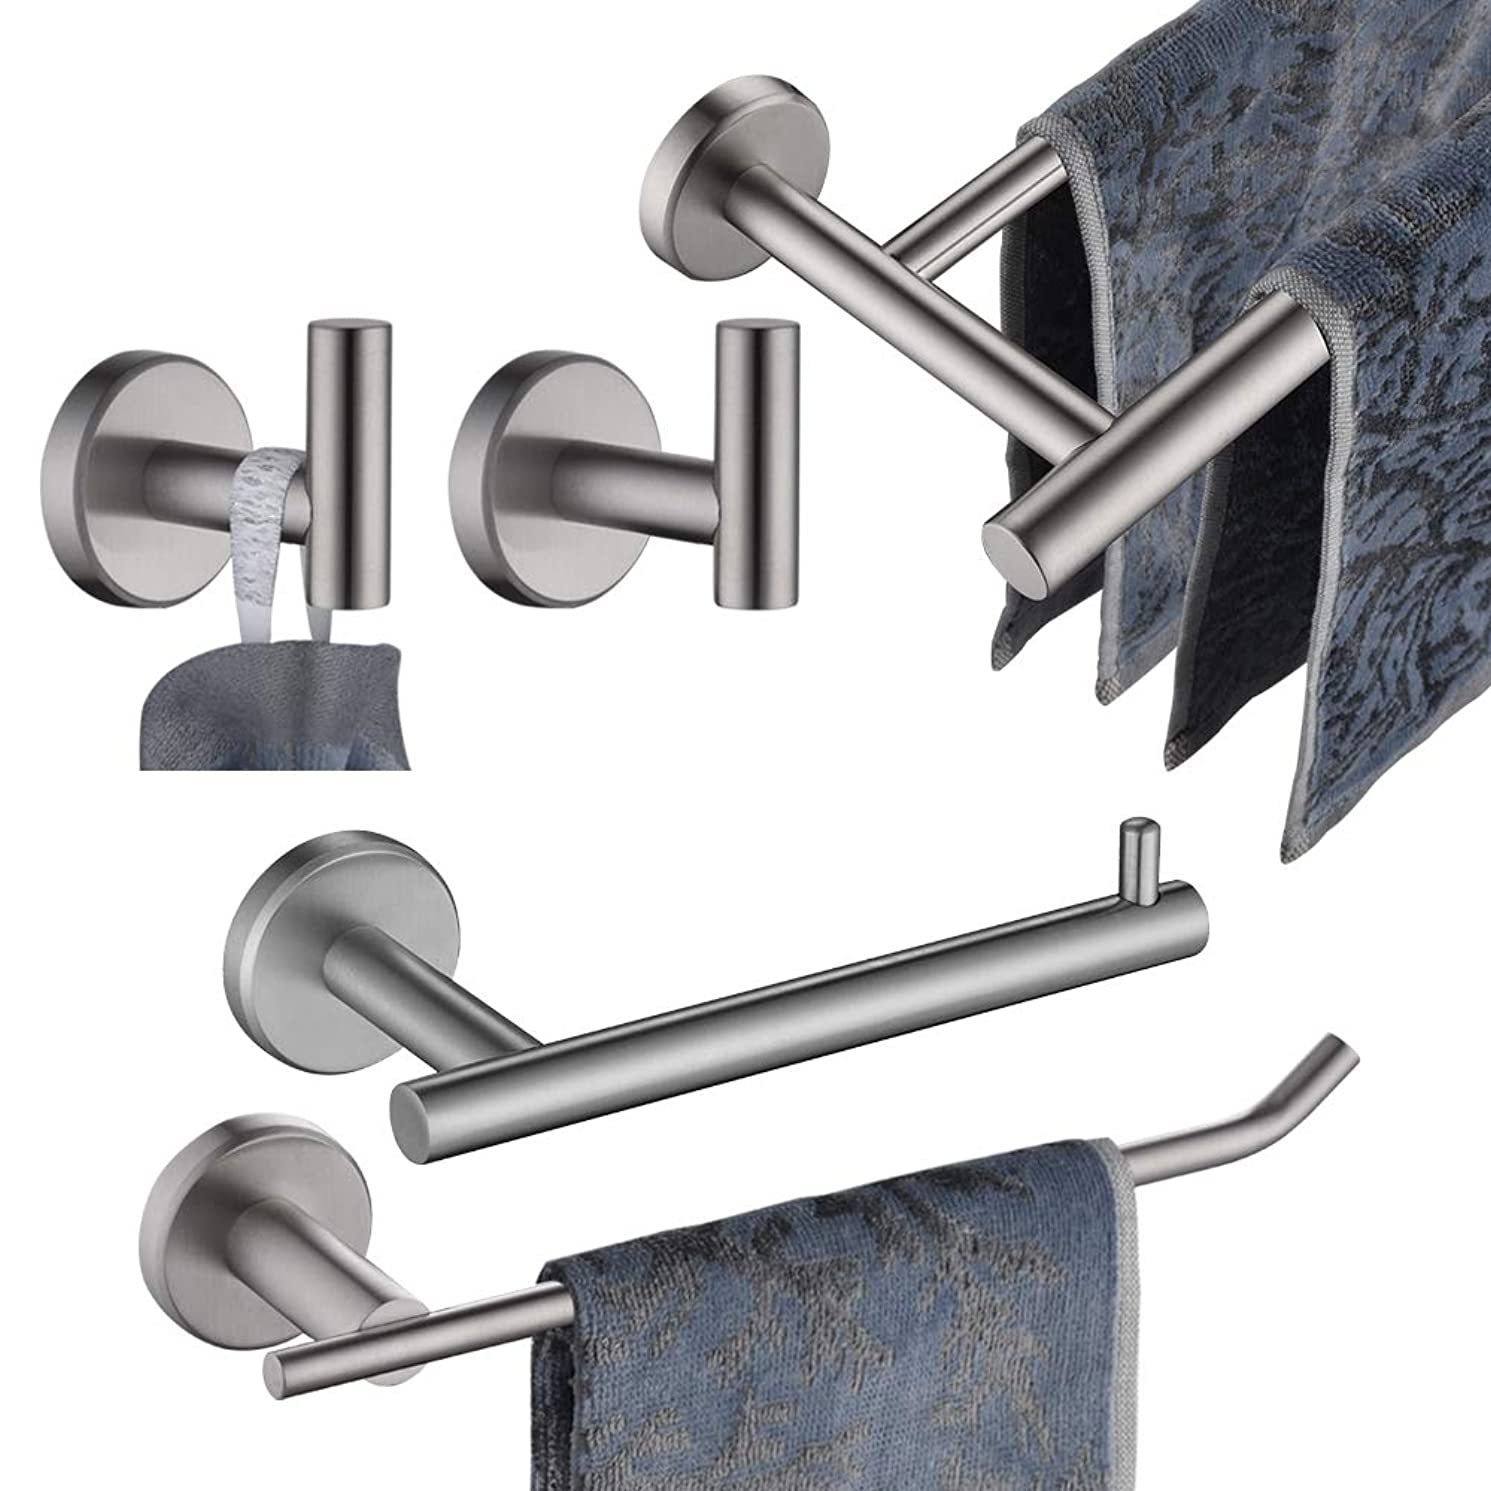 JQK Bath Hardware Towel Bar Accessory Set, 5-Piece Bathroom Accessories Fixtures Set Brushed Finished Wall Mount Includes 24